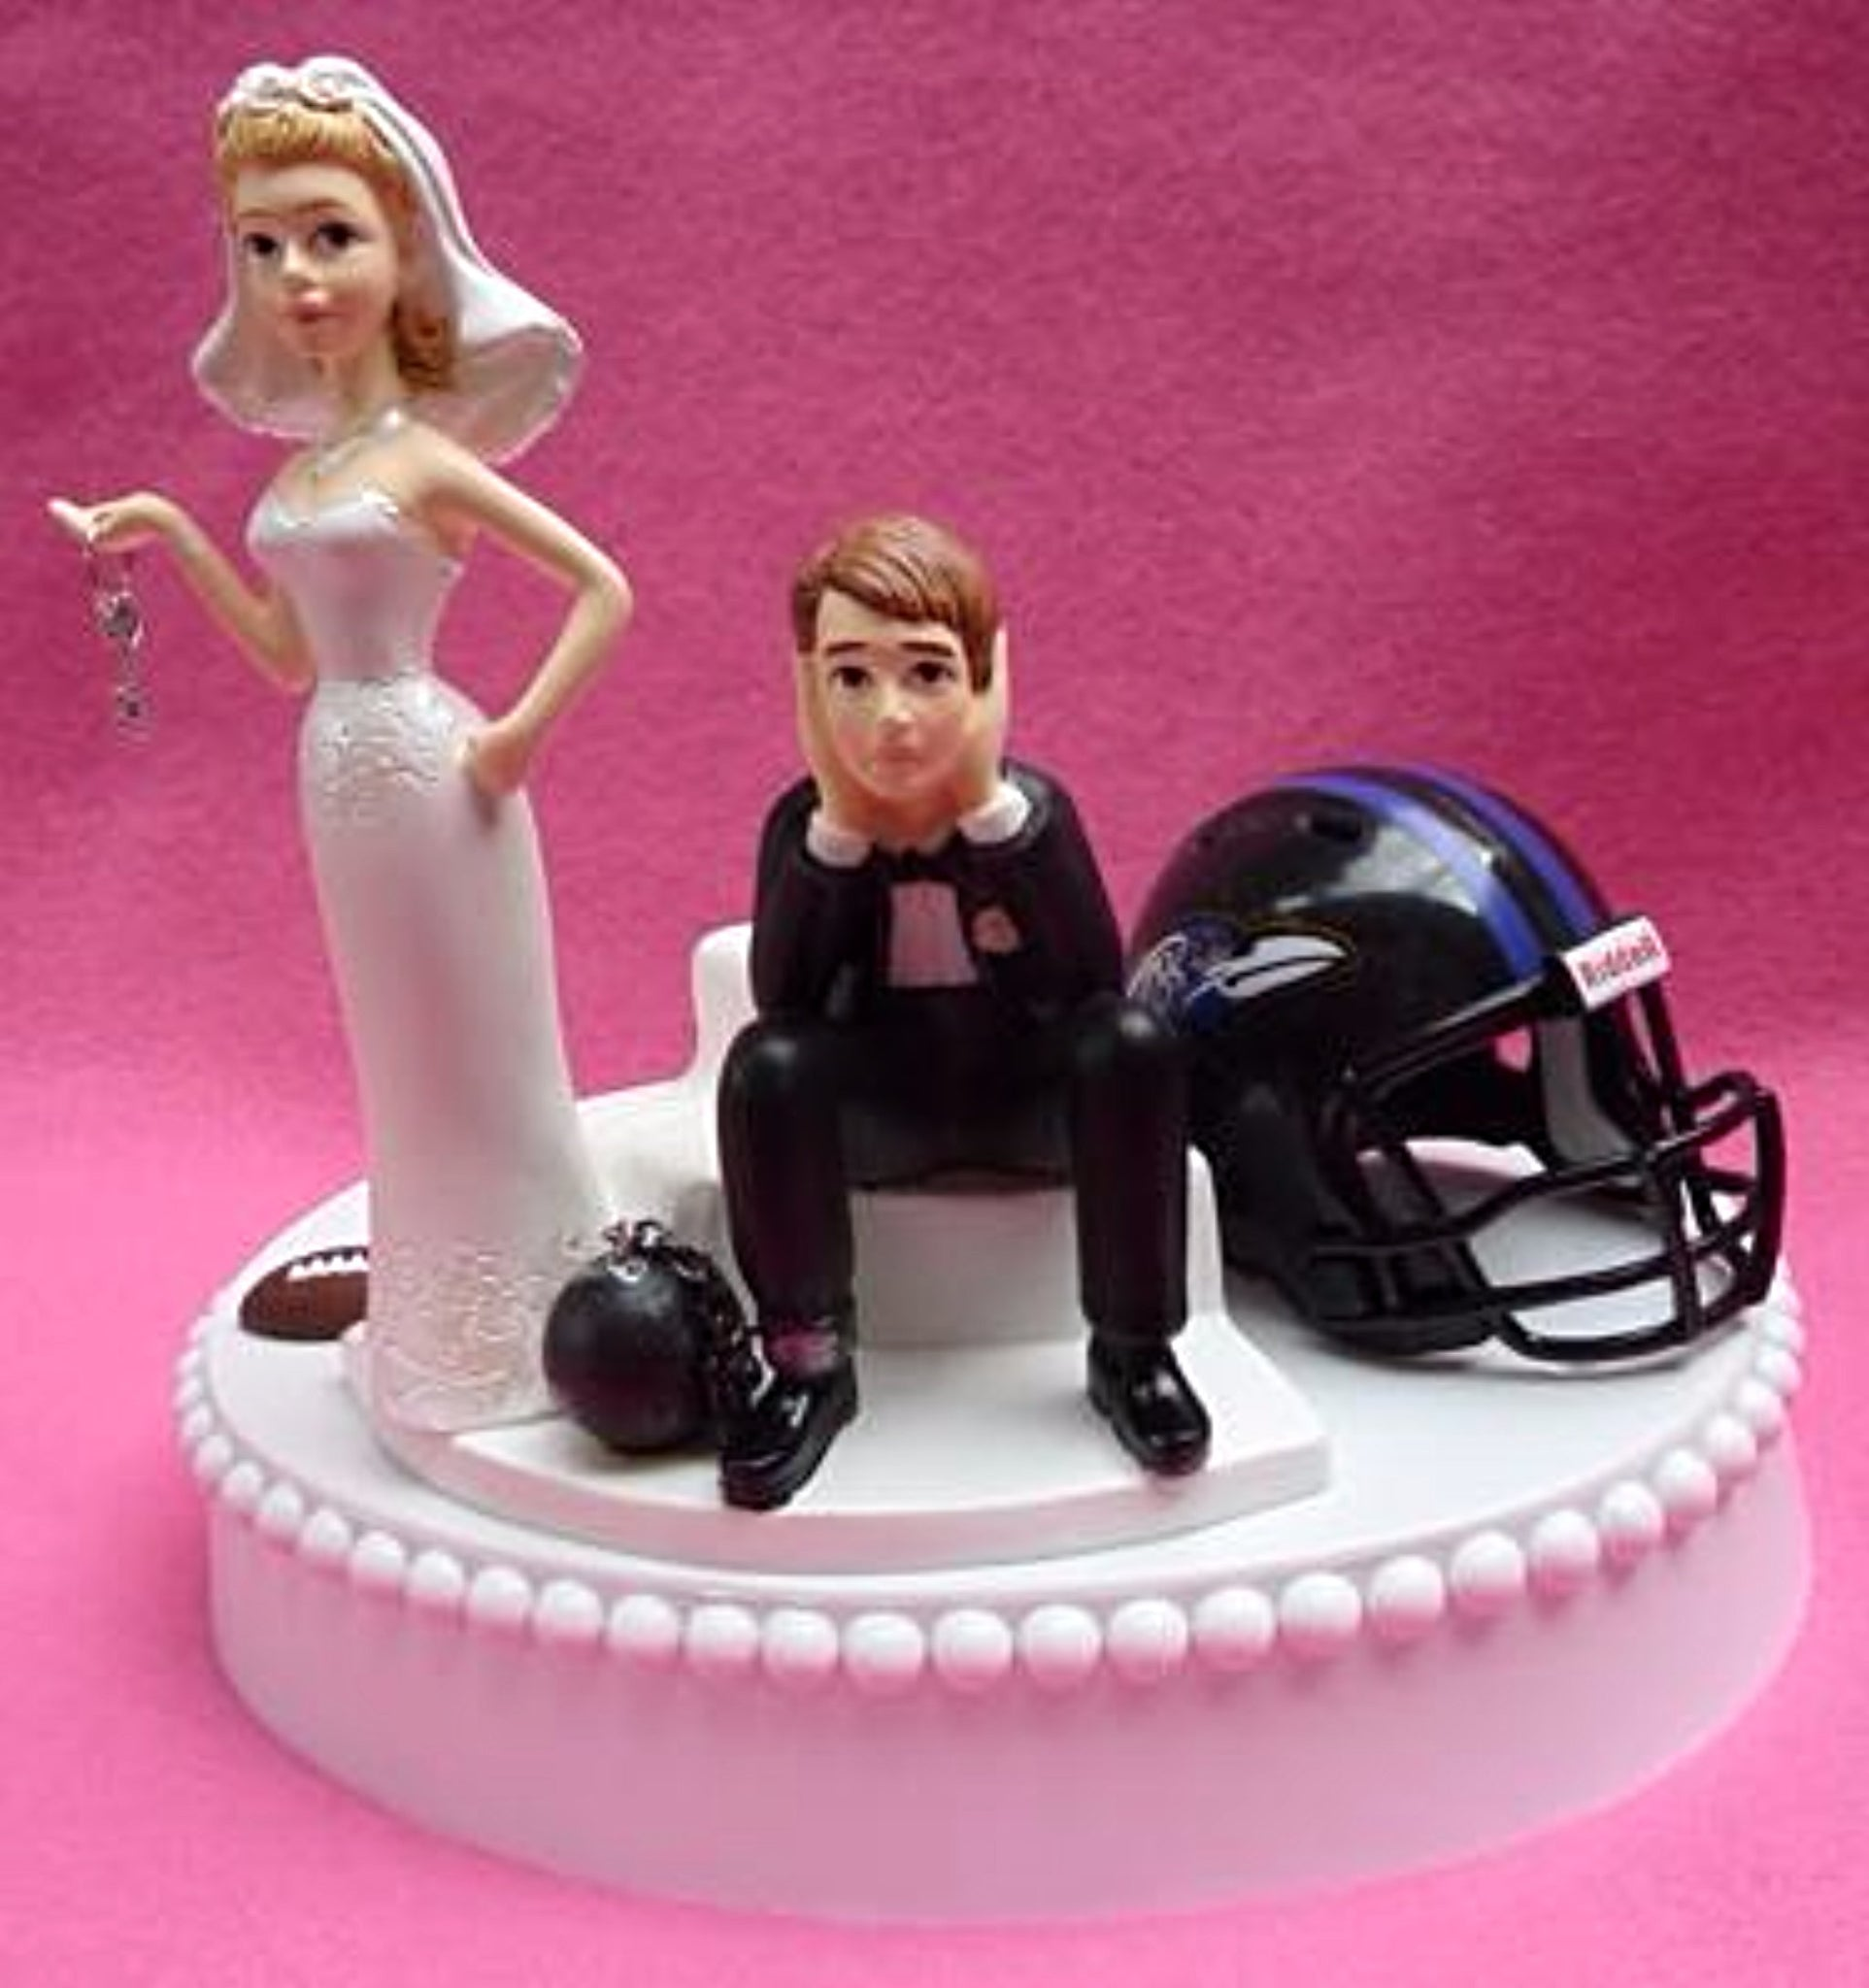 Astonishing Wedding Cake Topper Baltimore Ravens Football Themed Key Birthday Cards Printable Opercafe Filternl